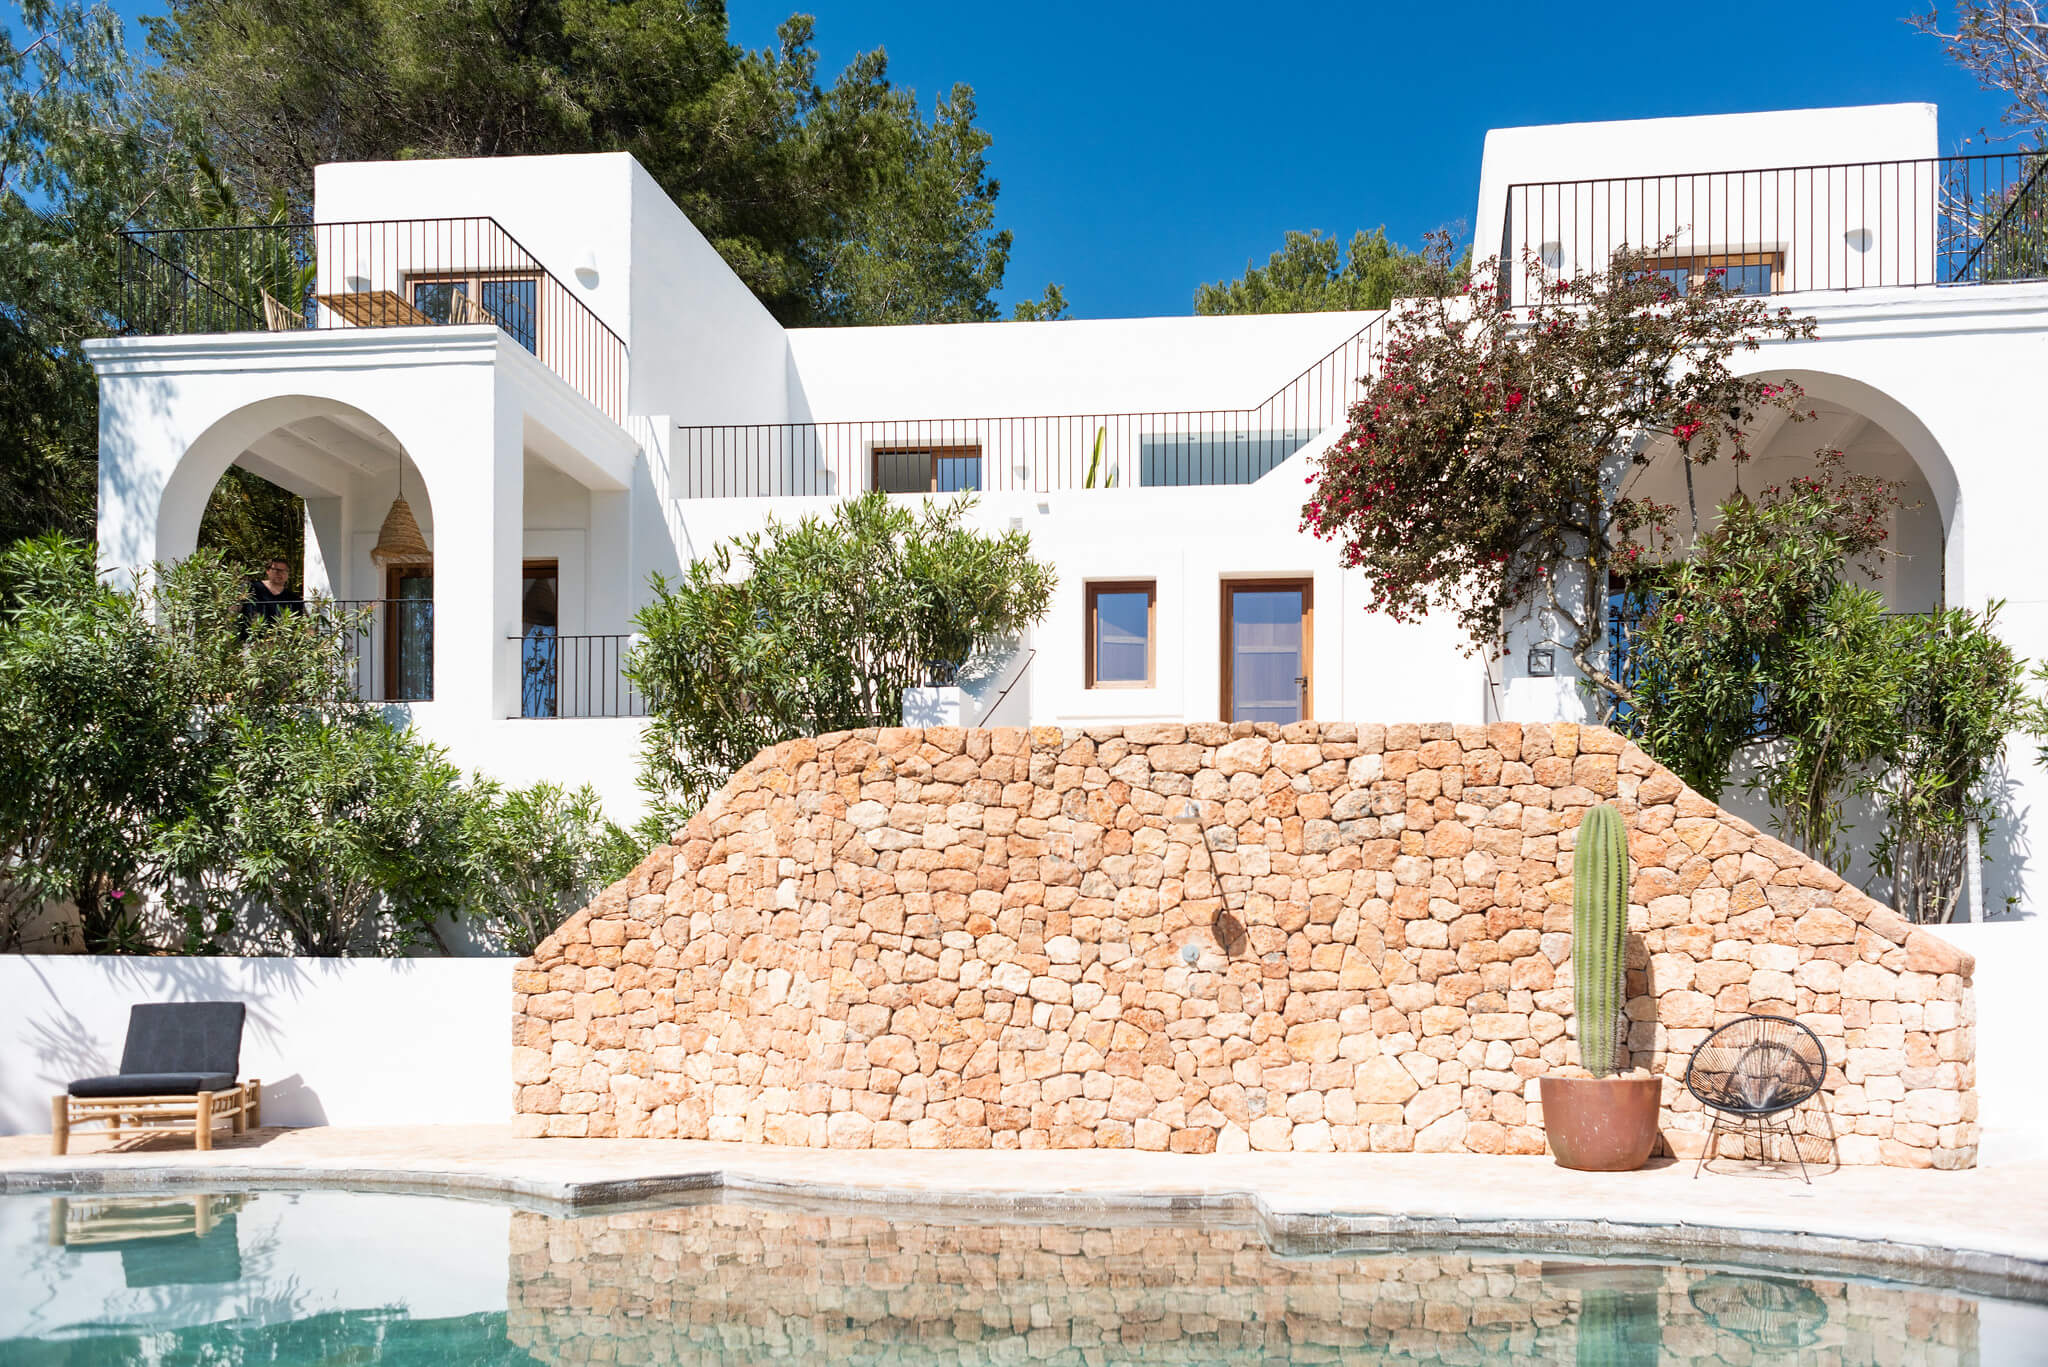 https://www.white-ibiza.com/wp-content/uploads/2020/05/white-ibiza-villas-can-cactus-view-from-pool.jpg